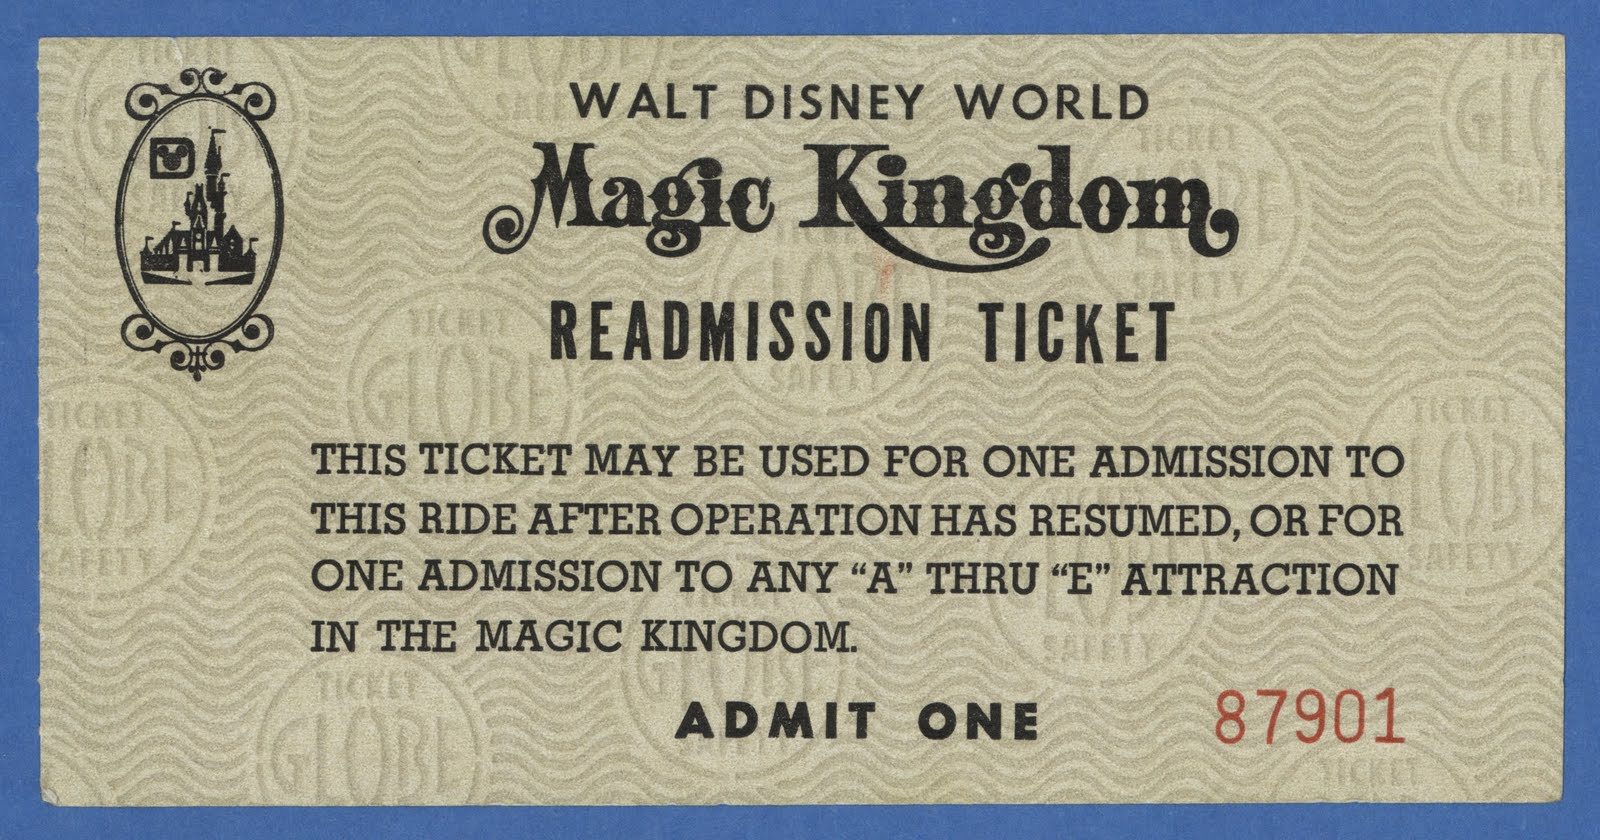 First Walt Disney World Readmission Ticket Ive Seen Or Posted Its Undated But Since The Larger Size It Must Be From Early 1970s